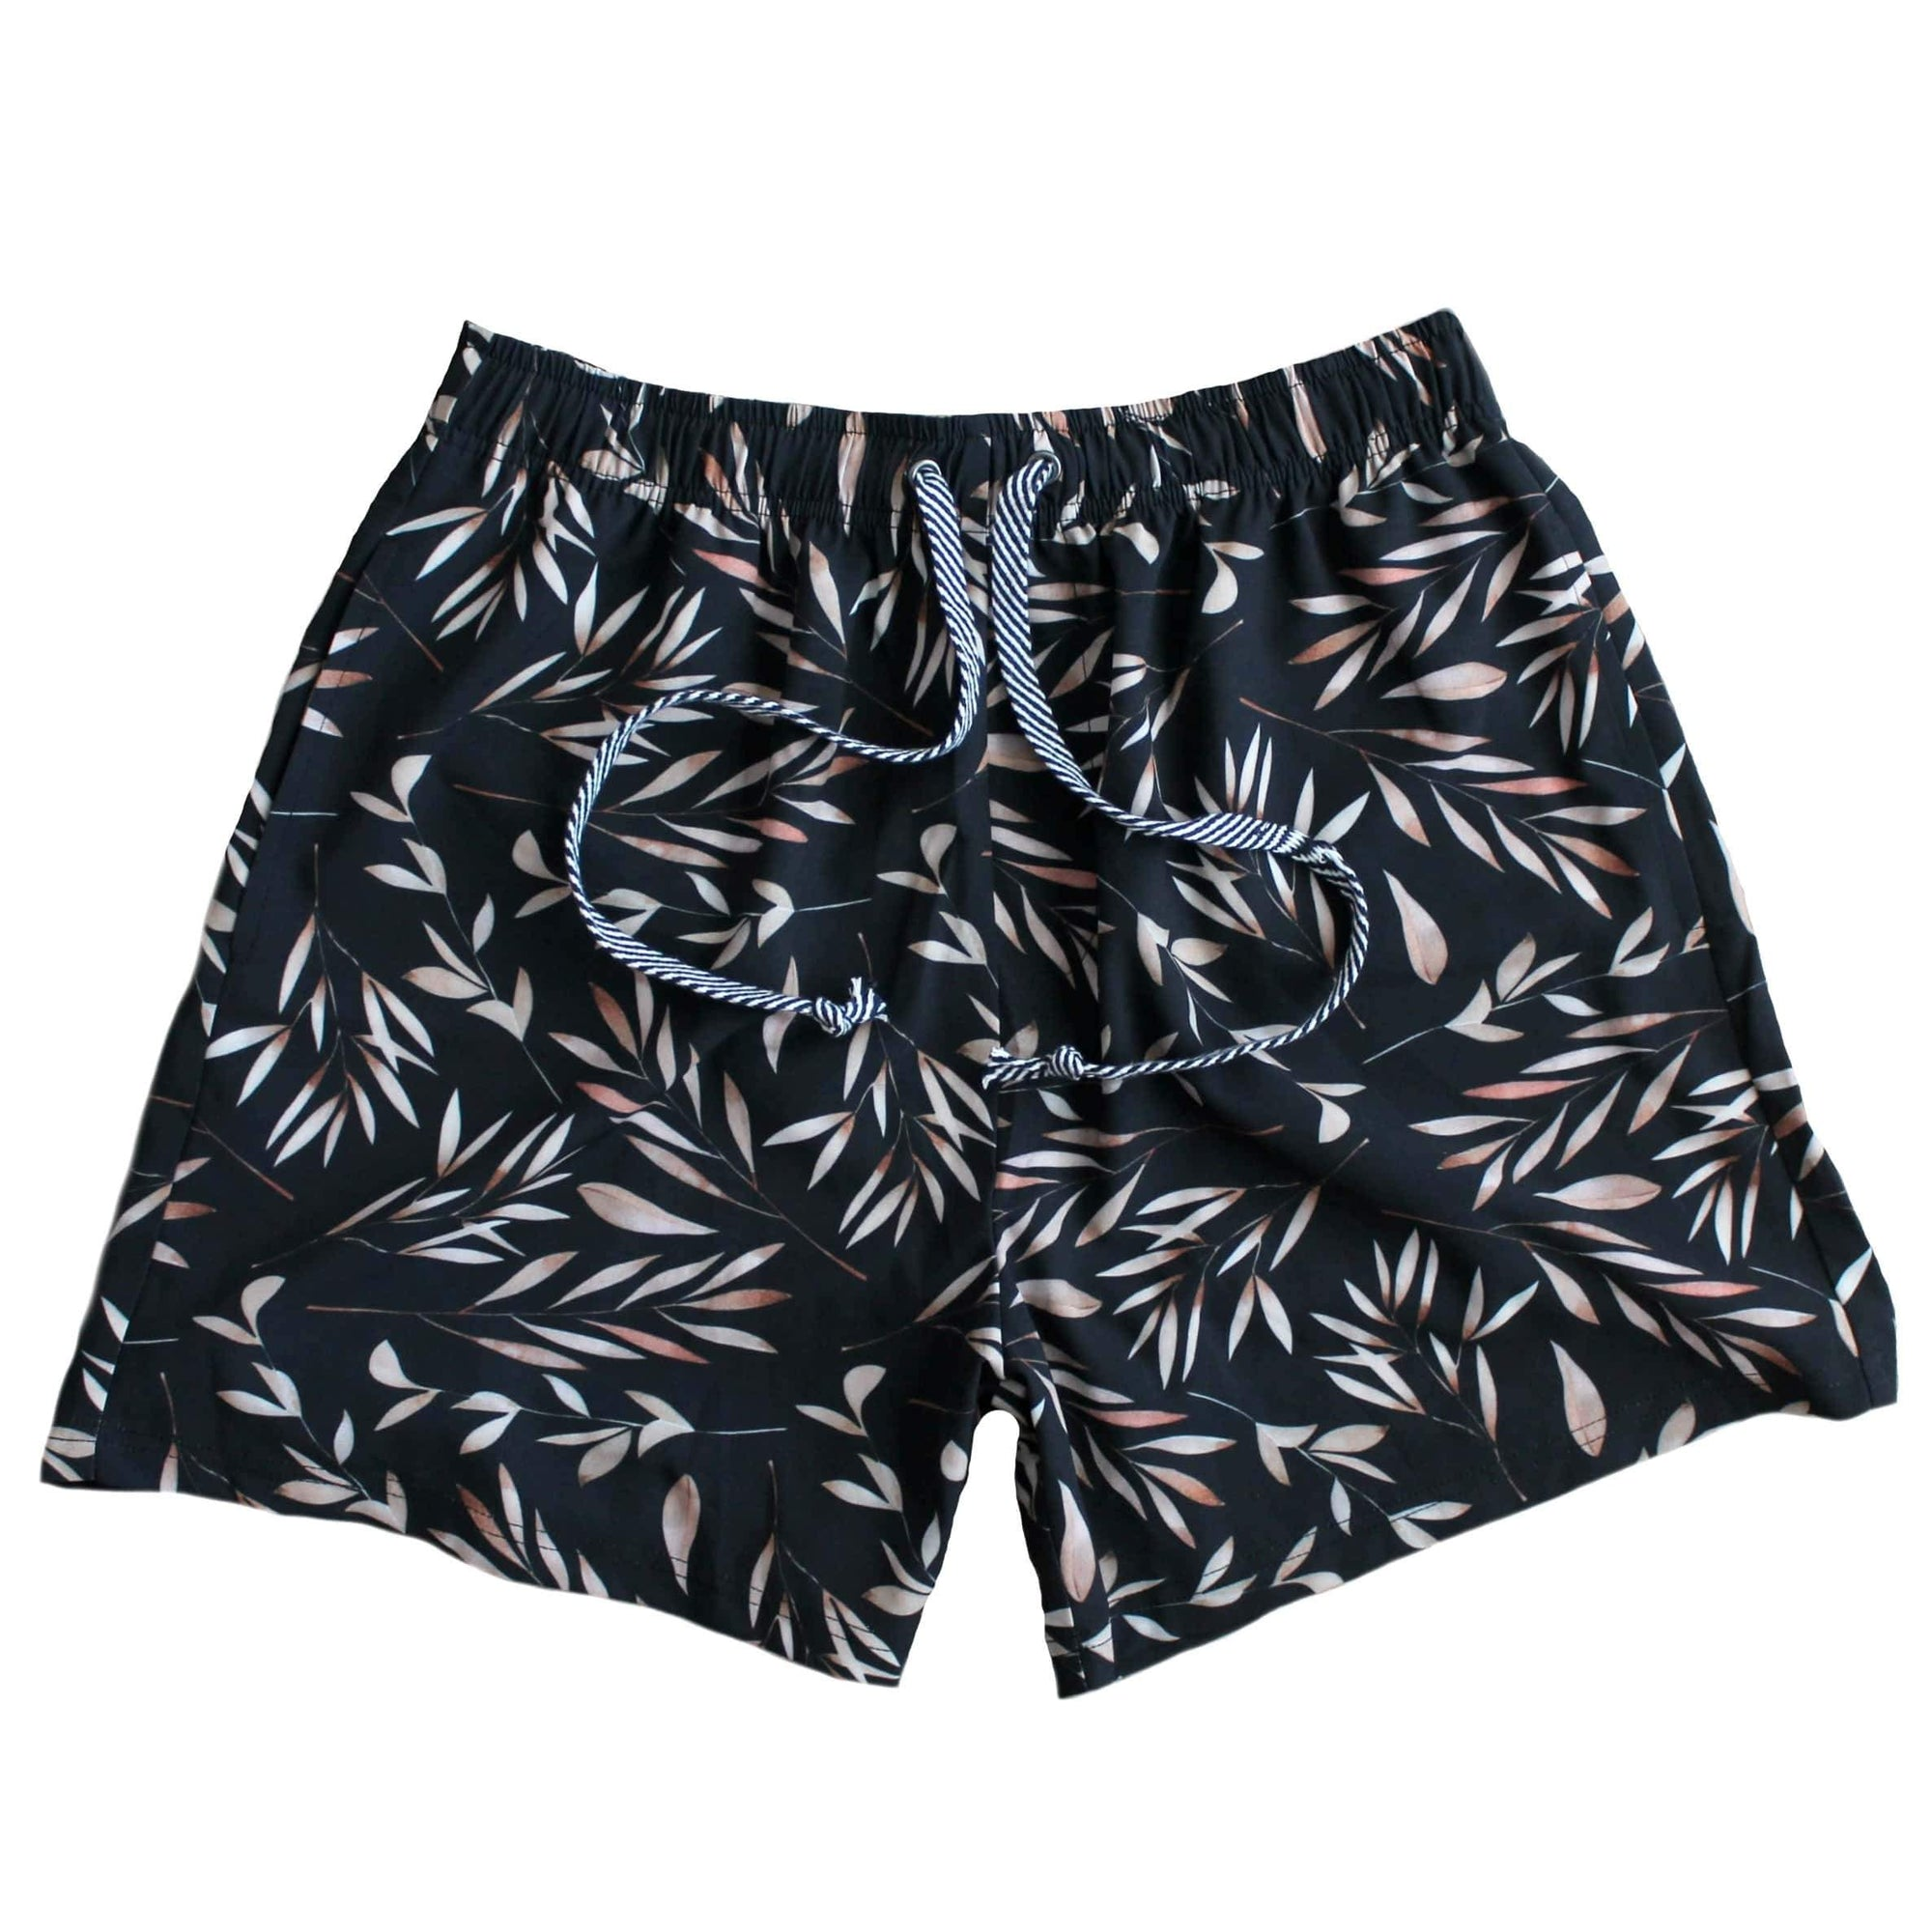 Duke of London Board Shorts 6 Duke of London Boardies - Leaf